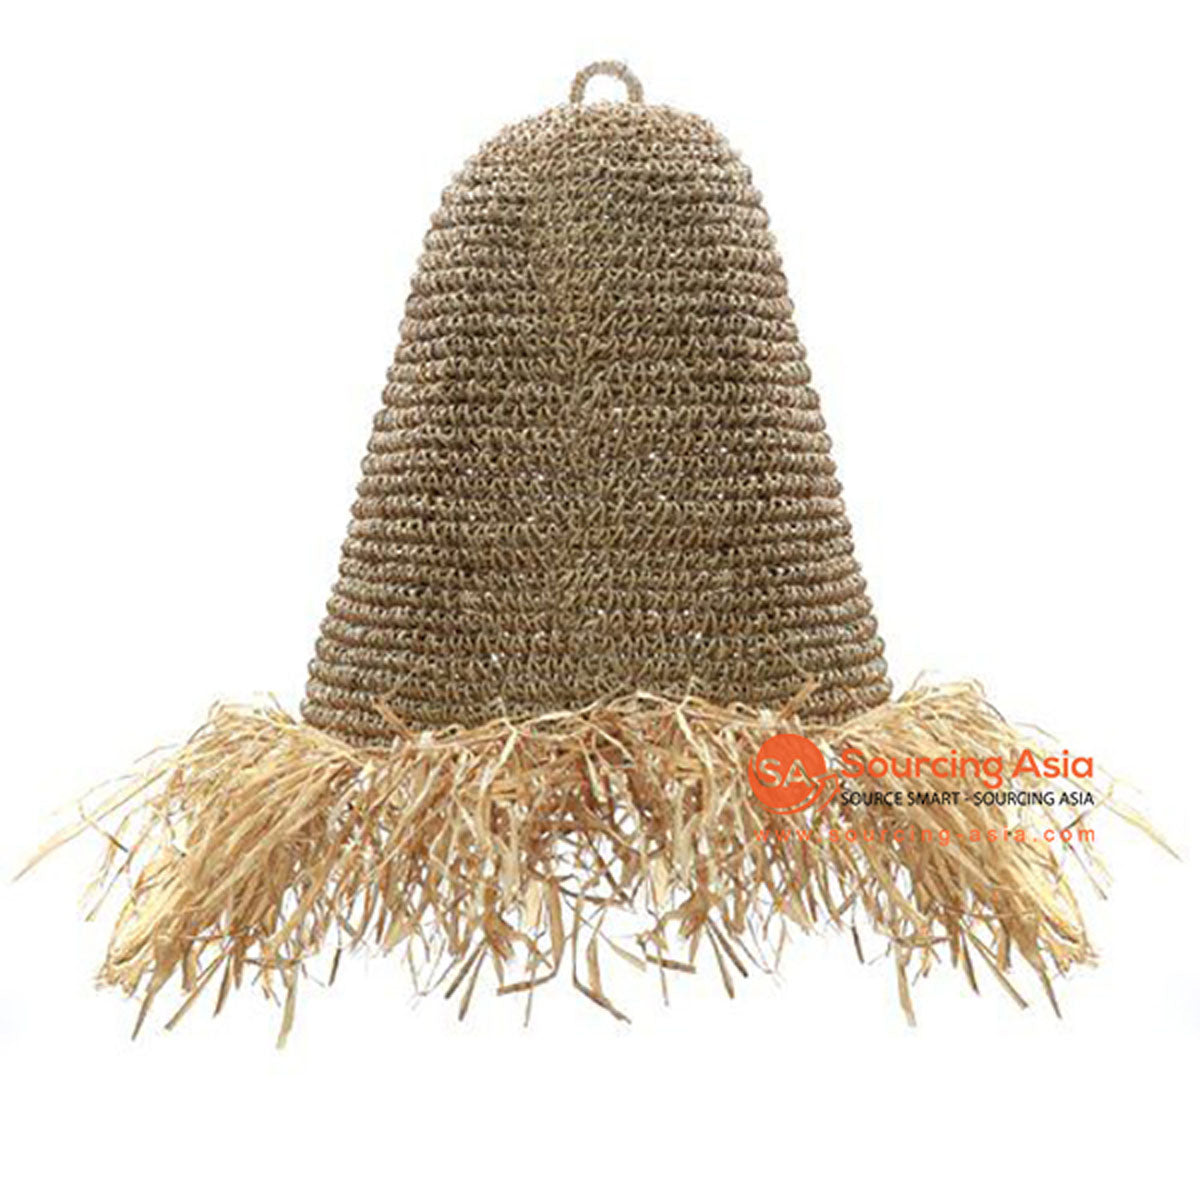 SHL063-1 NATURAL RAFFIA PENDANT LAMP WITH FRINGE